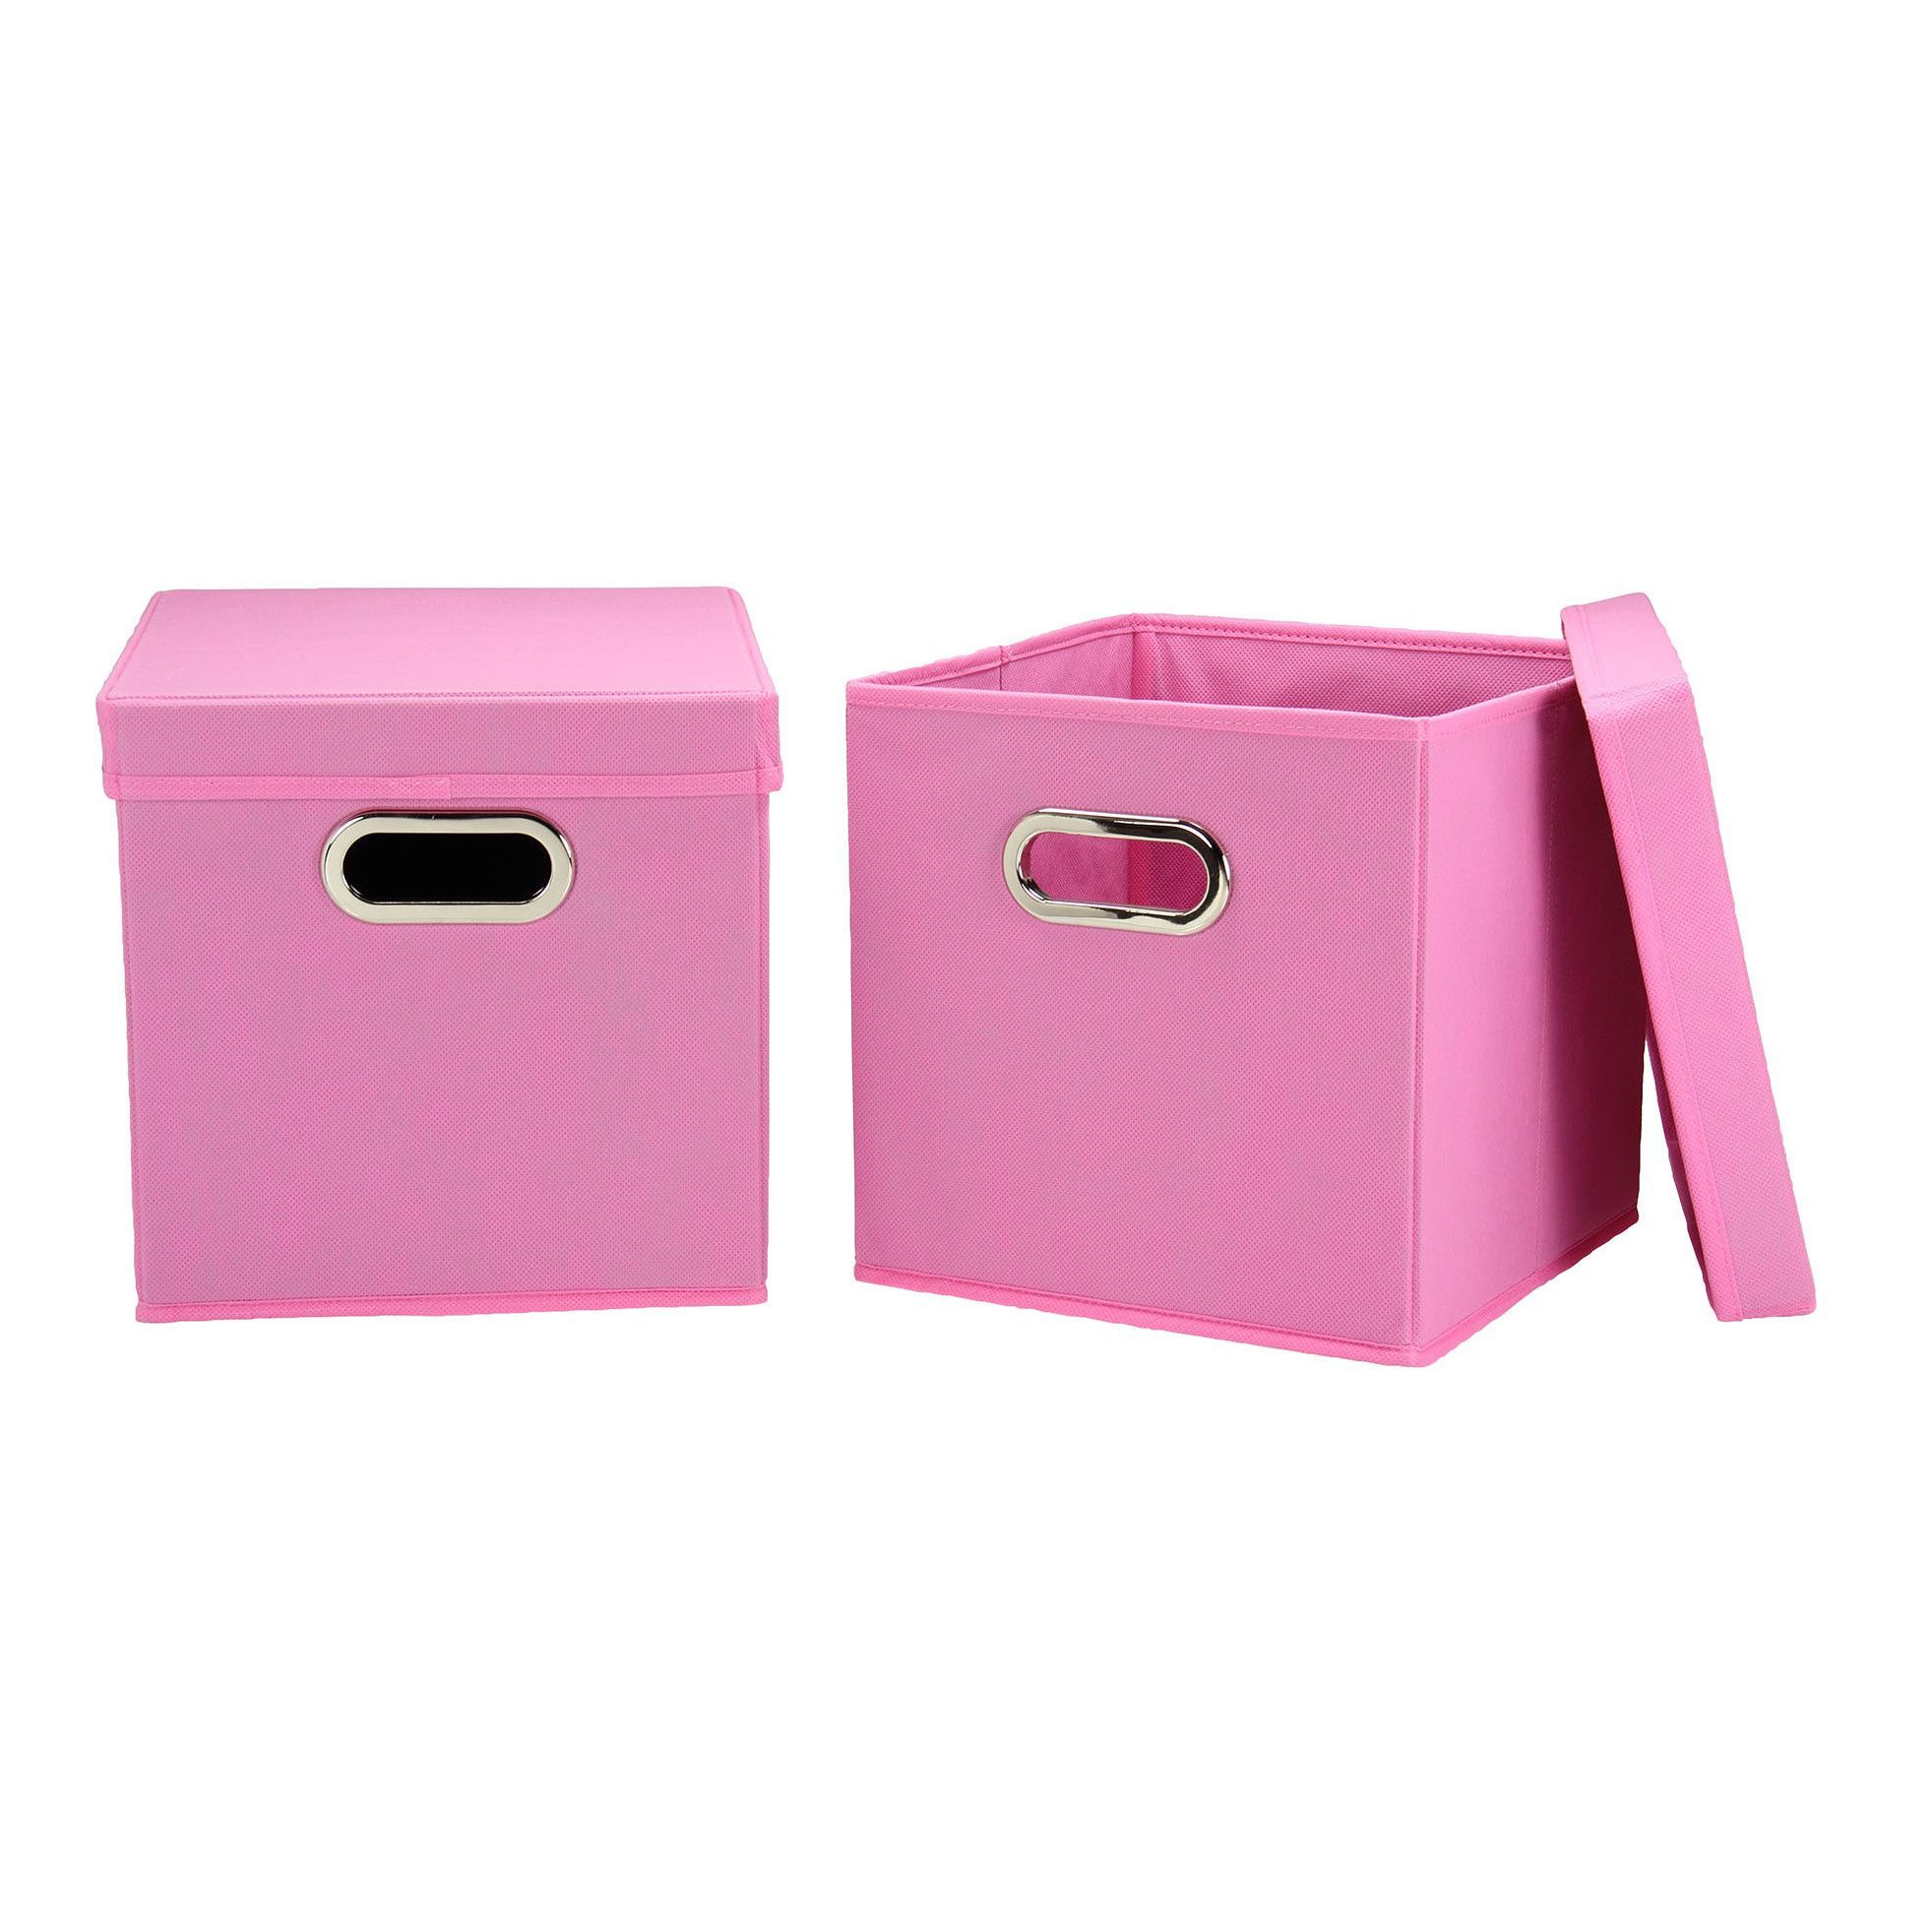 Wayfair Basics Cube Crate Collapsible Storage Bins Cube Storage Household Essentials